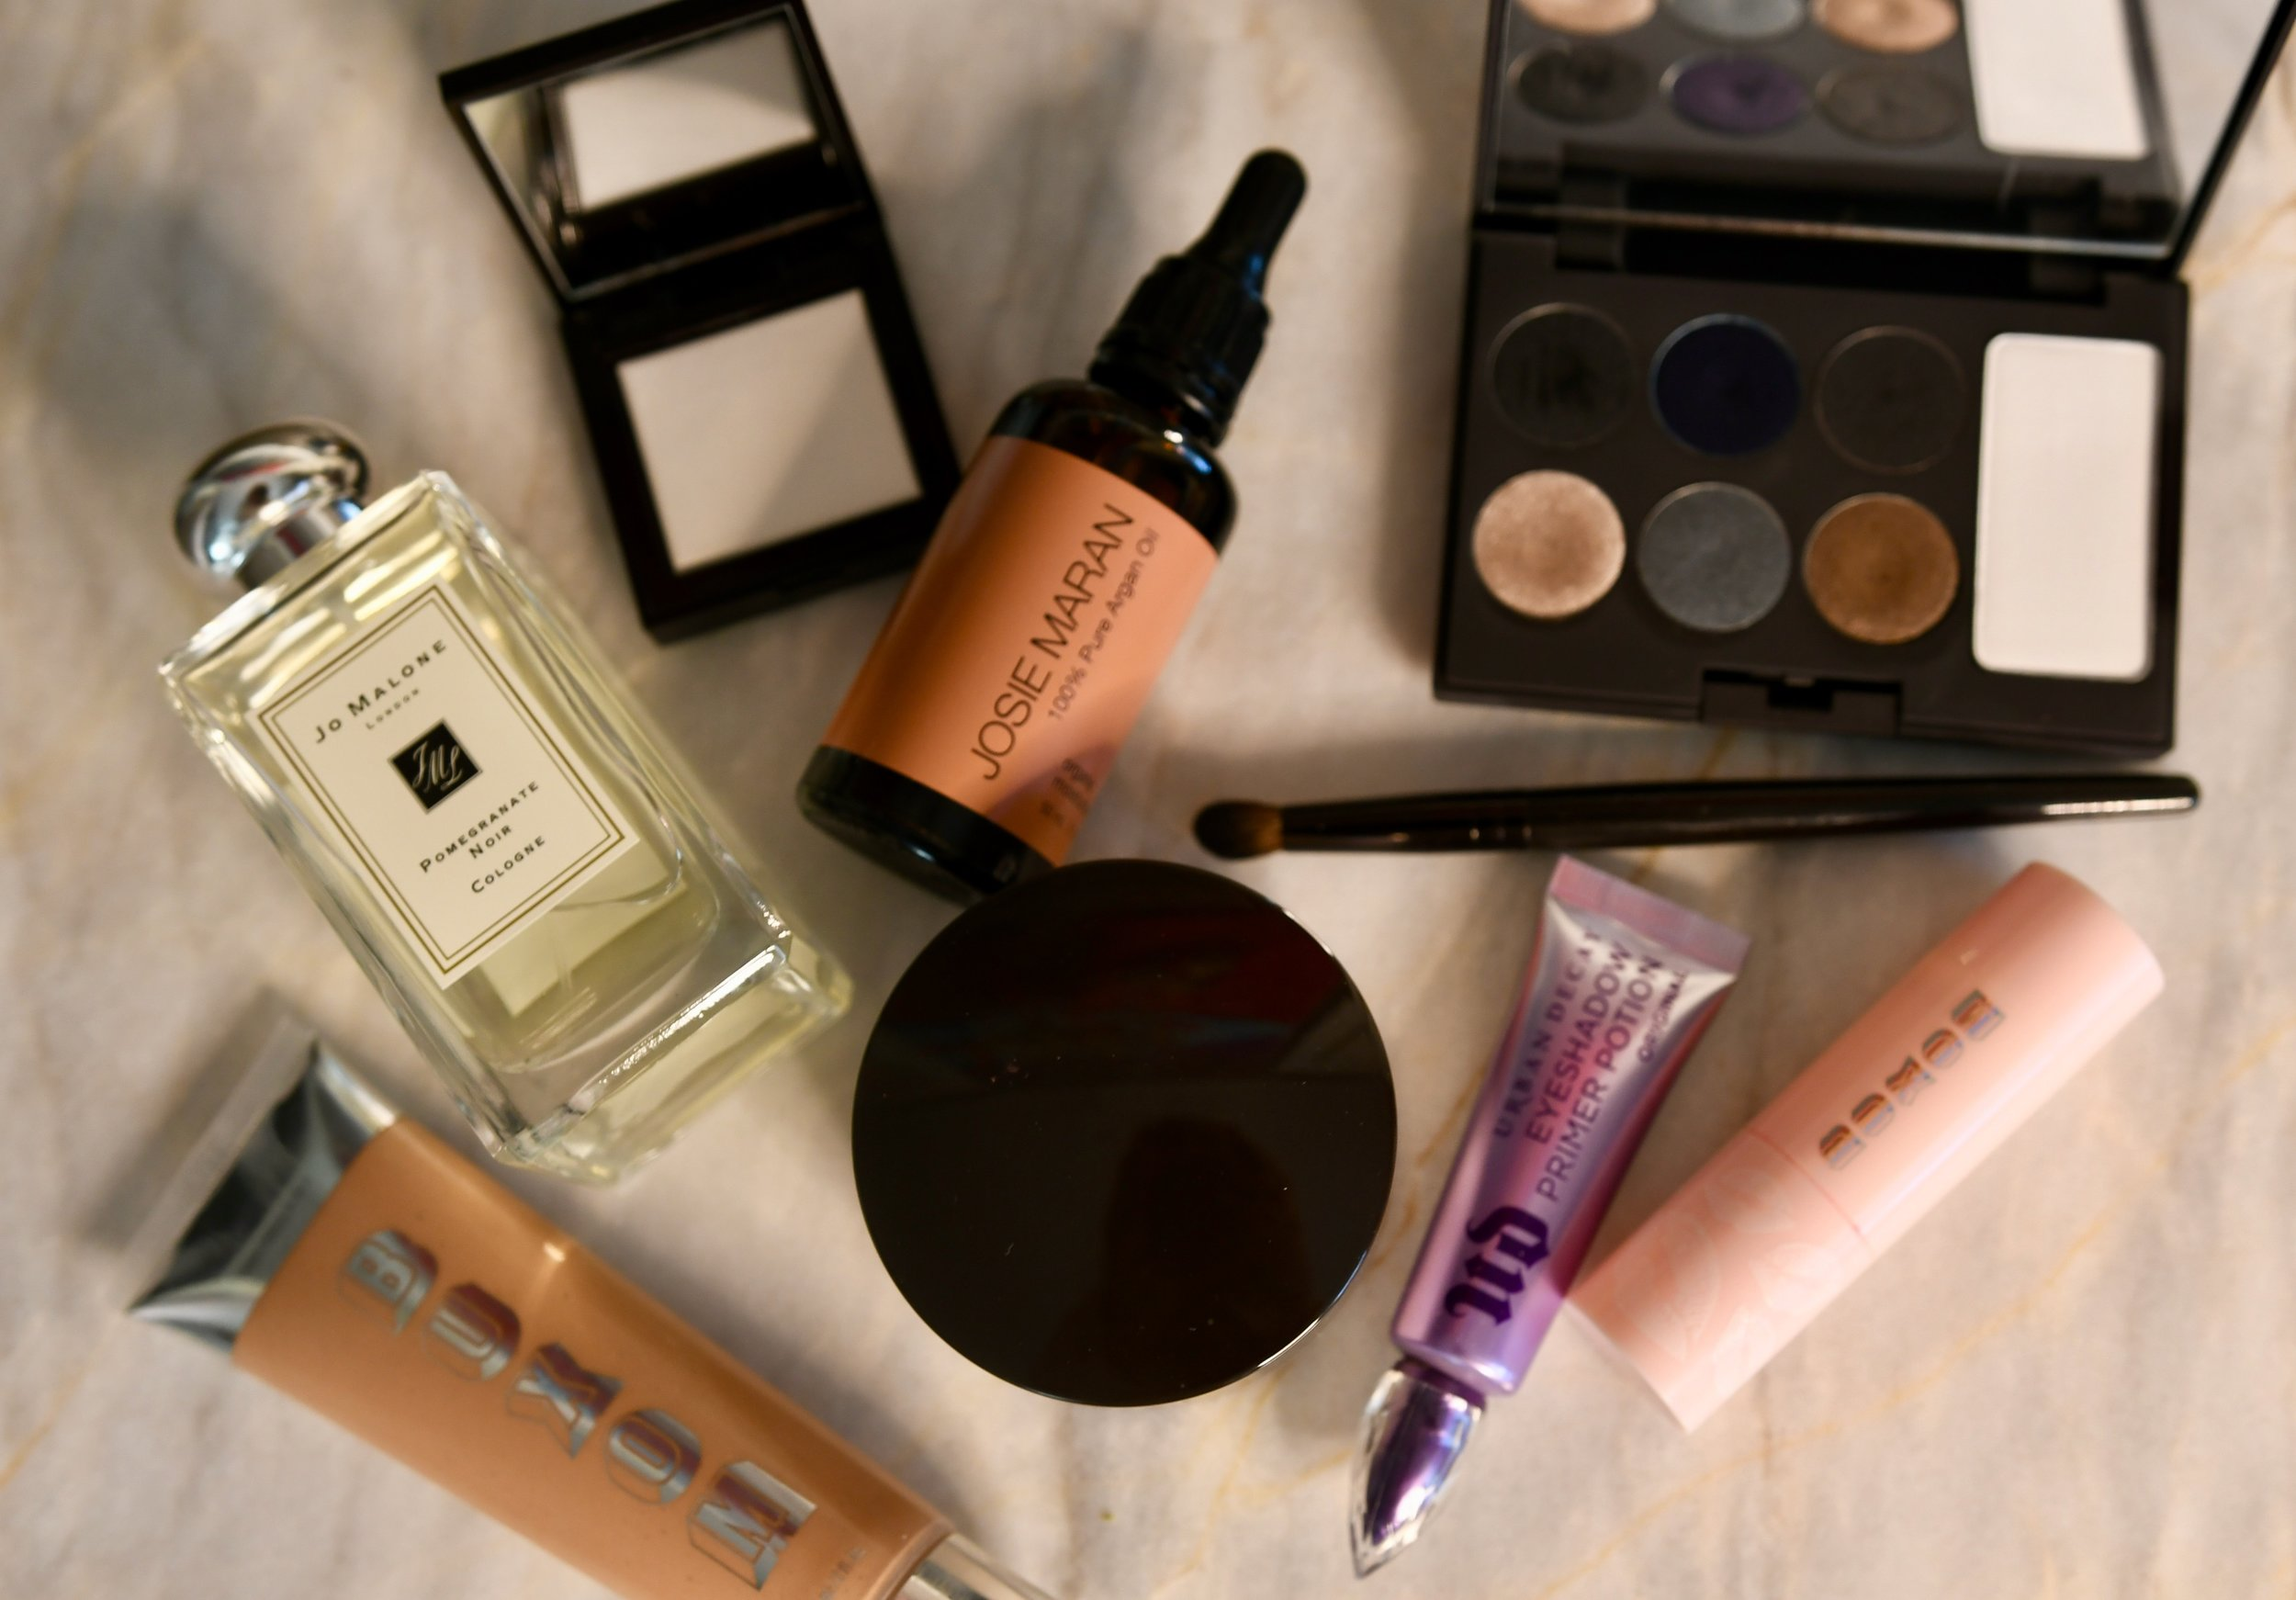 My favorite beauty products - Crazy Blonde Life